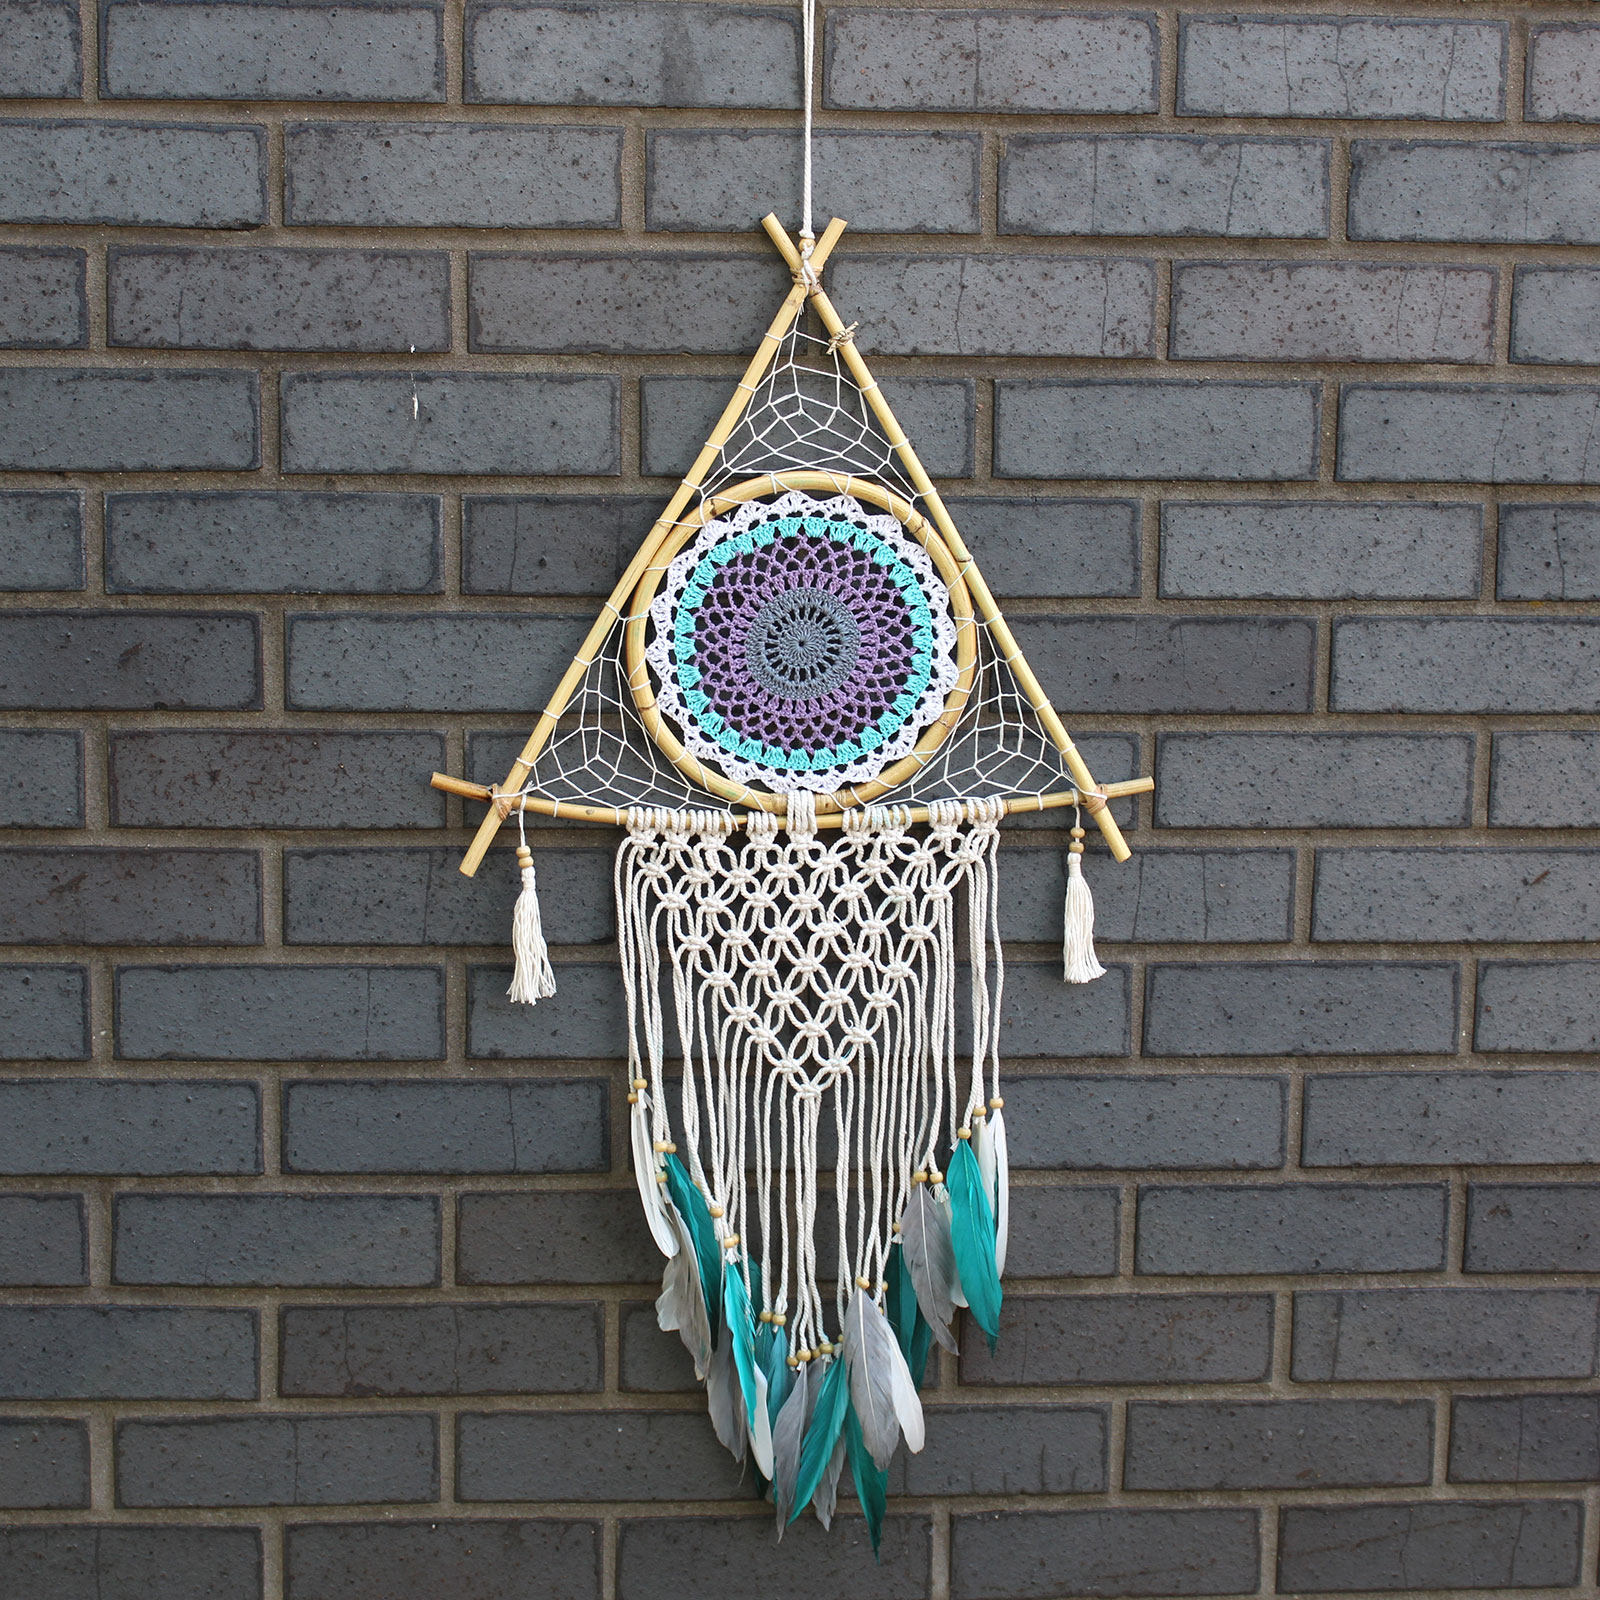 Protection Dream Catcher Lrg Macrame Pyramid WhiteTurquoise